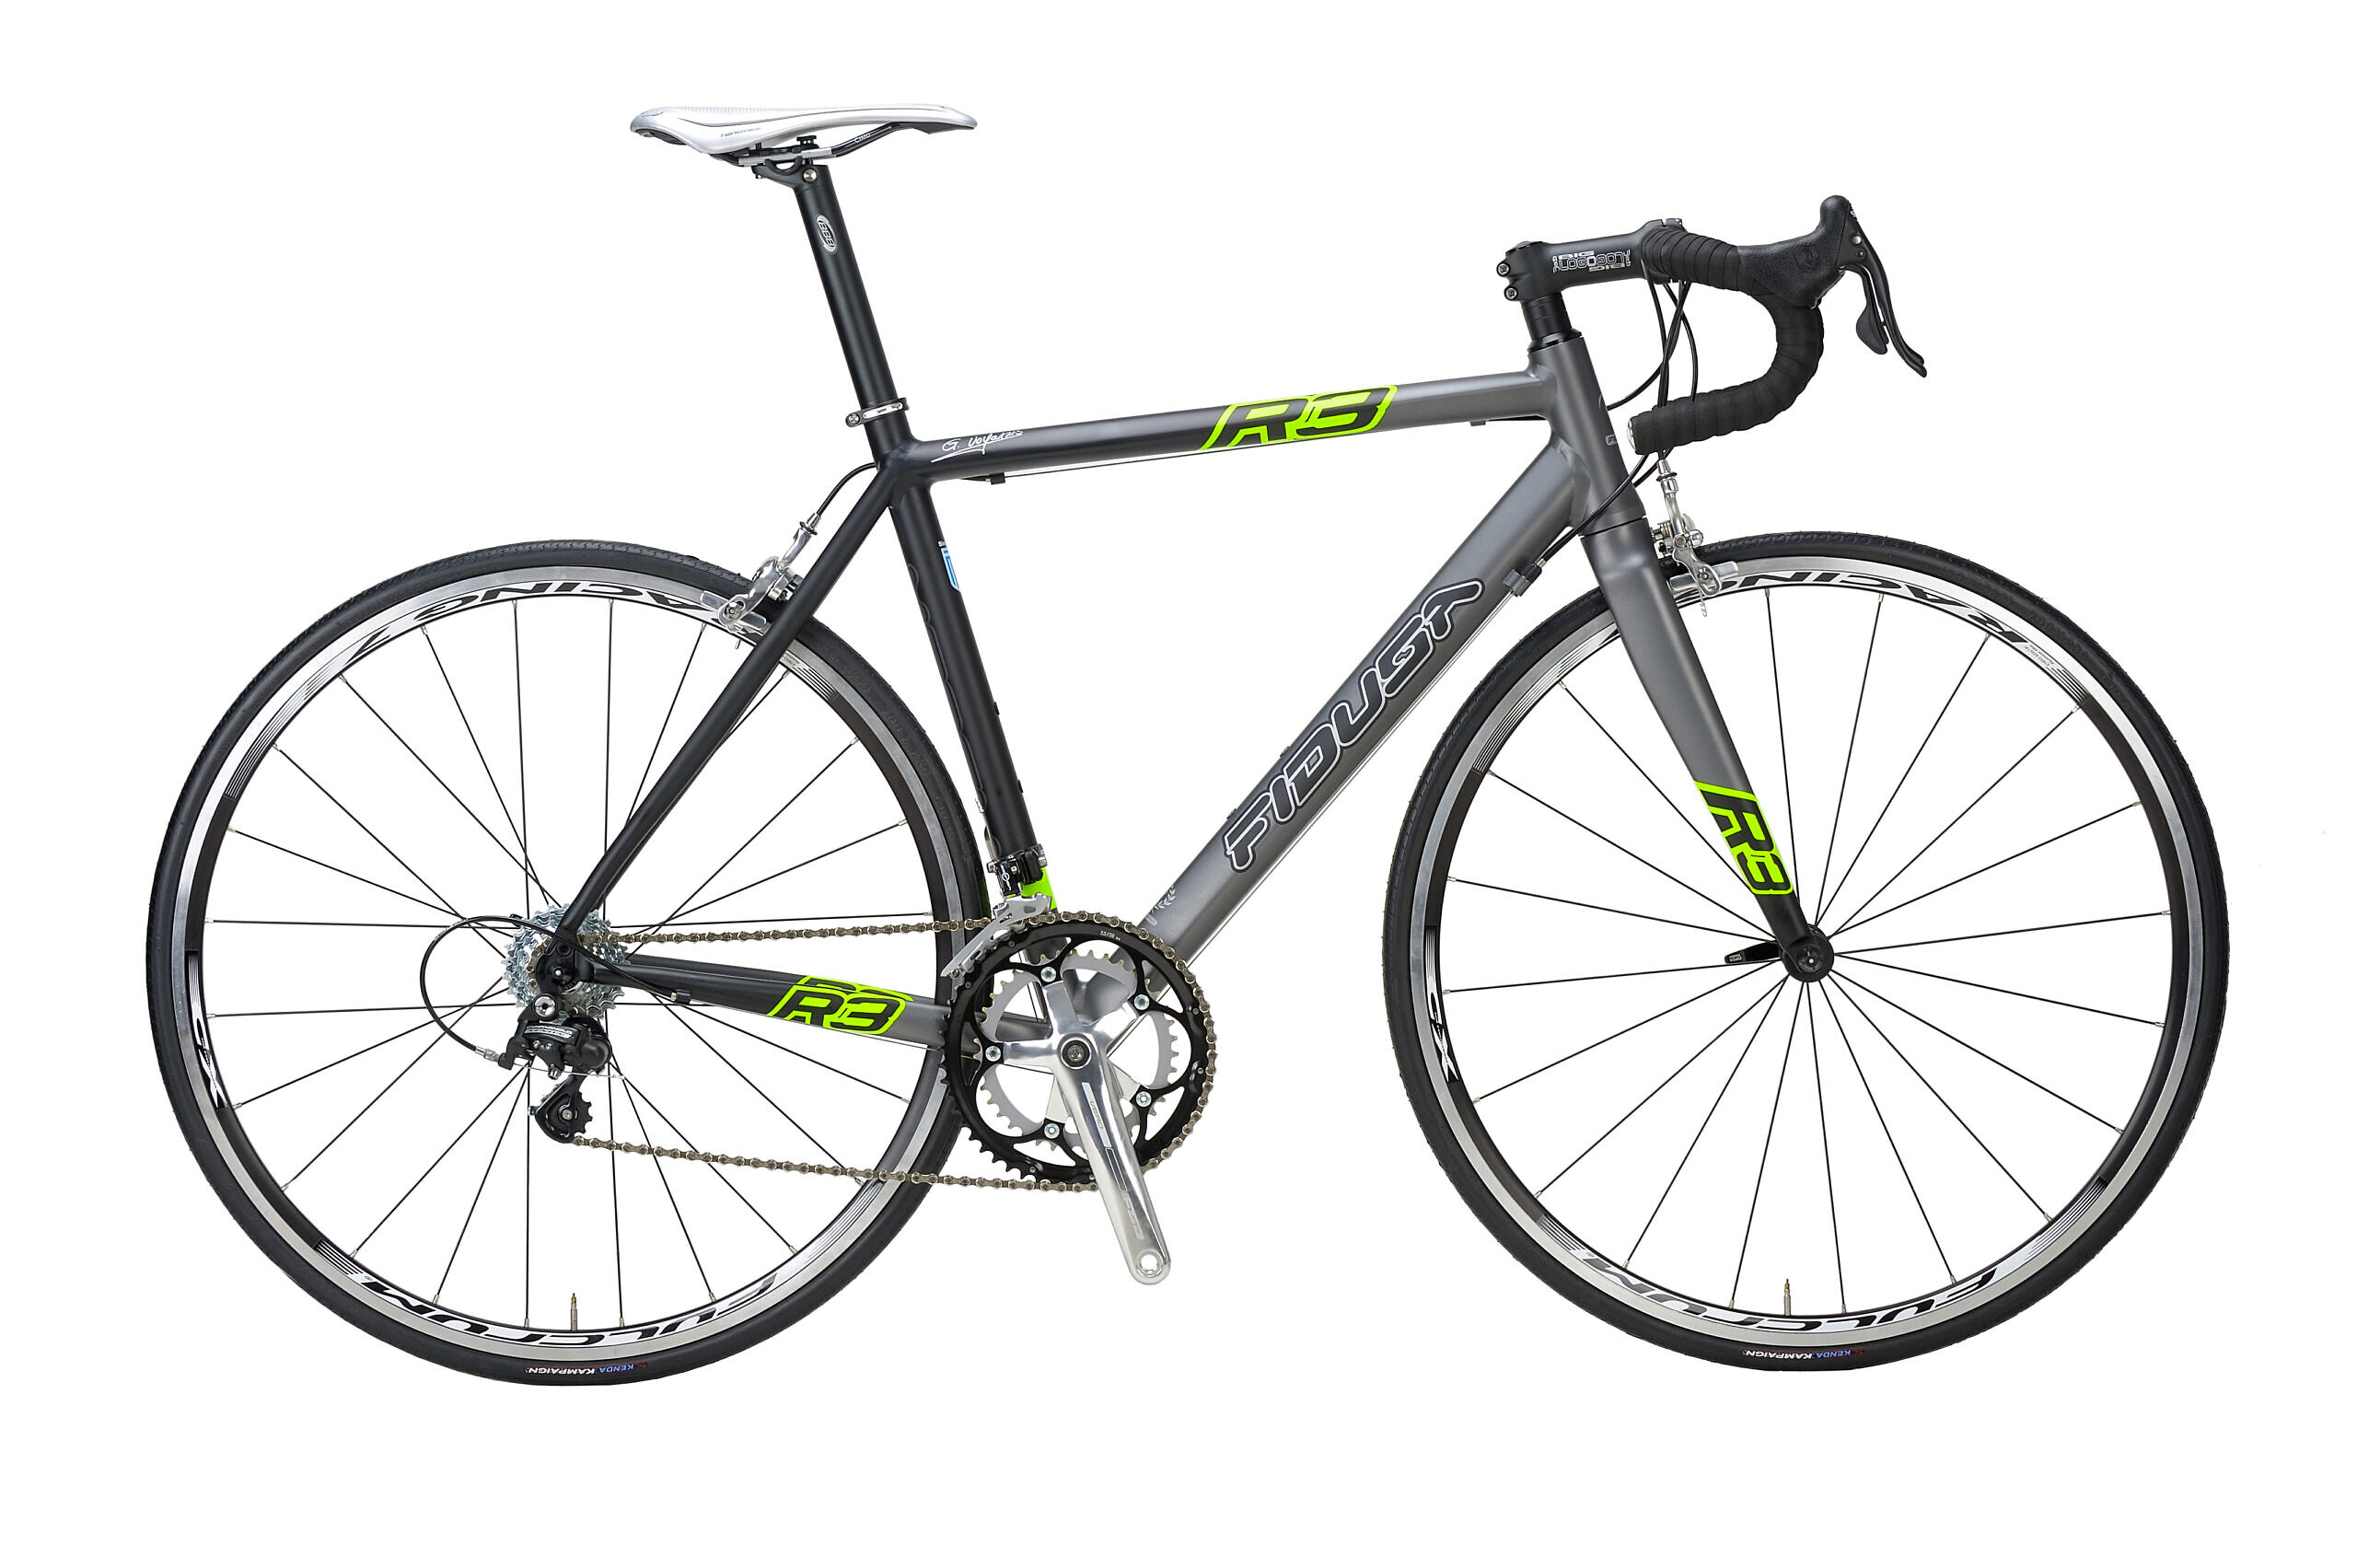 R3-ANTRACHITE-BLACK-PLANE-scaled Fidusa R3 Alloy Road Bike